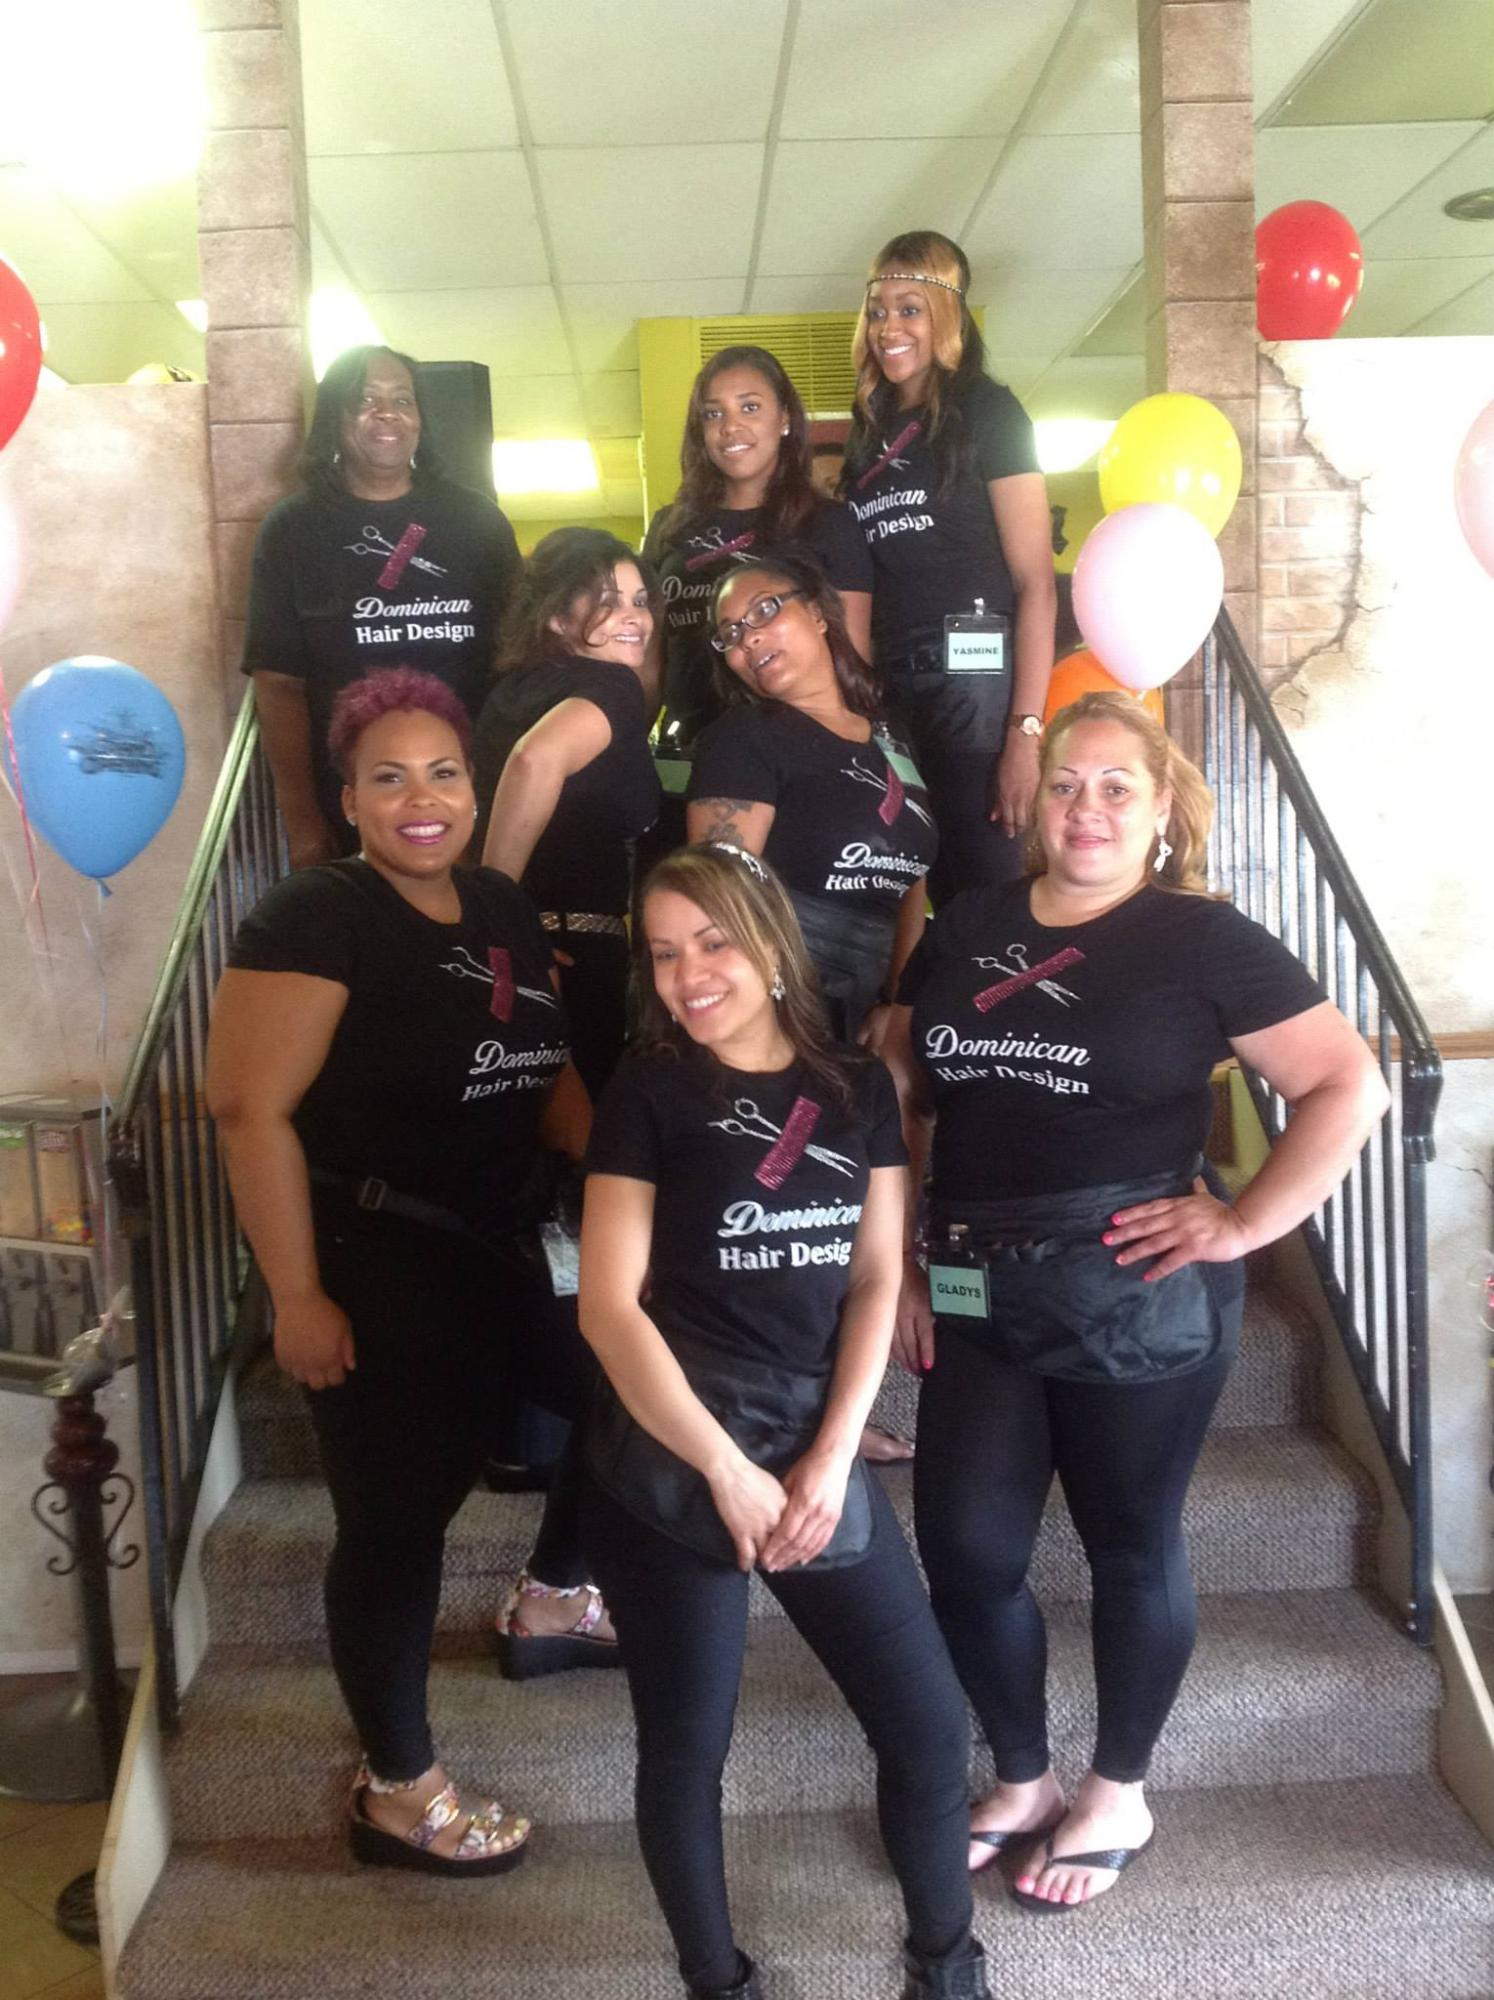 Design t shirt esthetician - Our Gifted Team Of Stylists Estheticians Massage Therapists And Nail Specialists Along With Our Support Staff Are All Here To Ensure That All Of Your